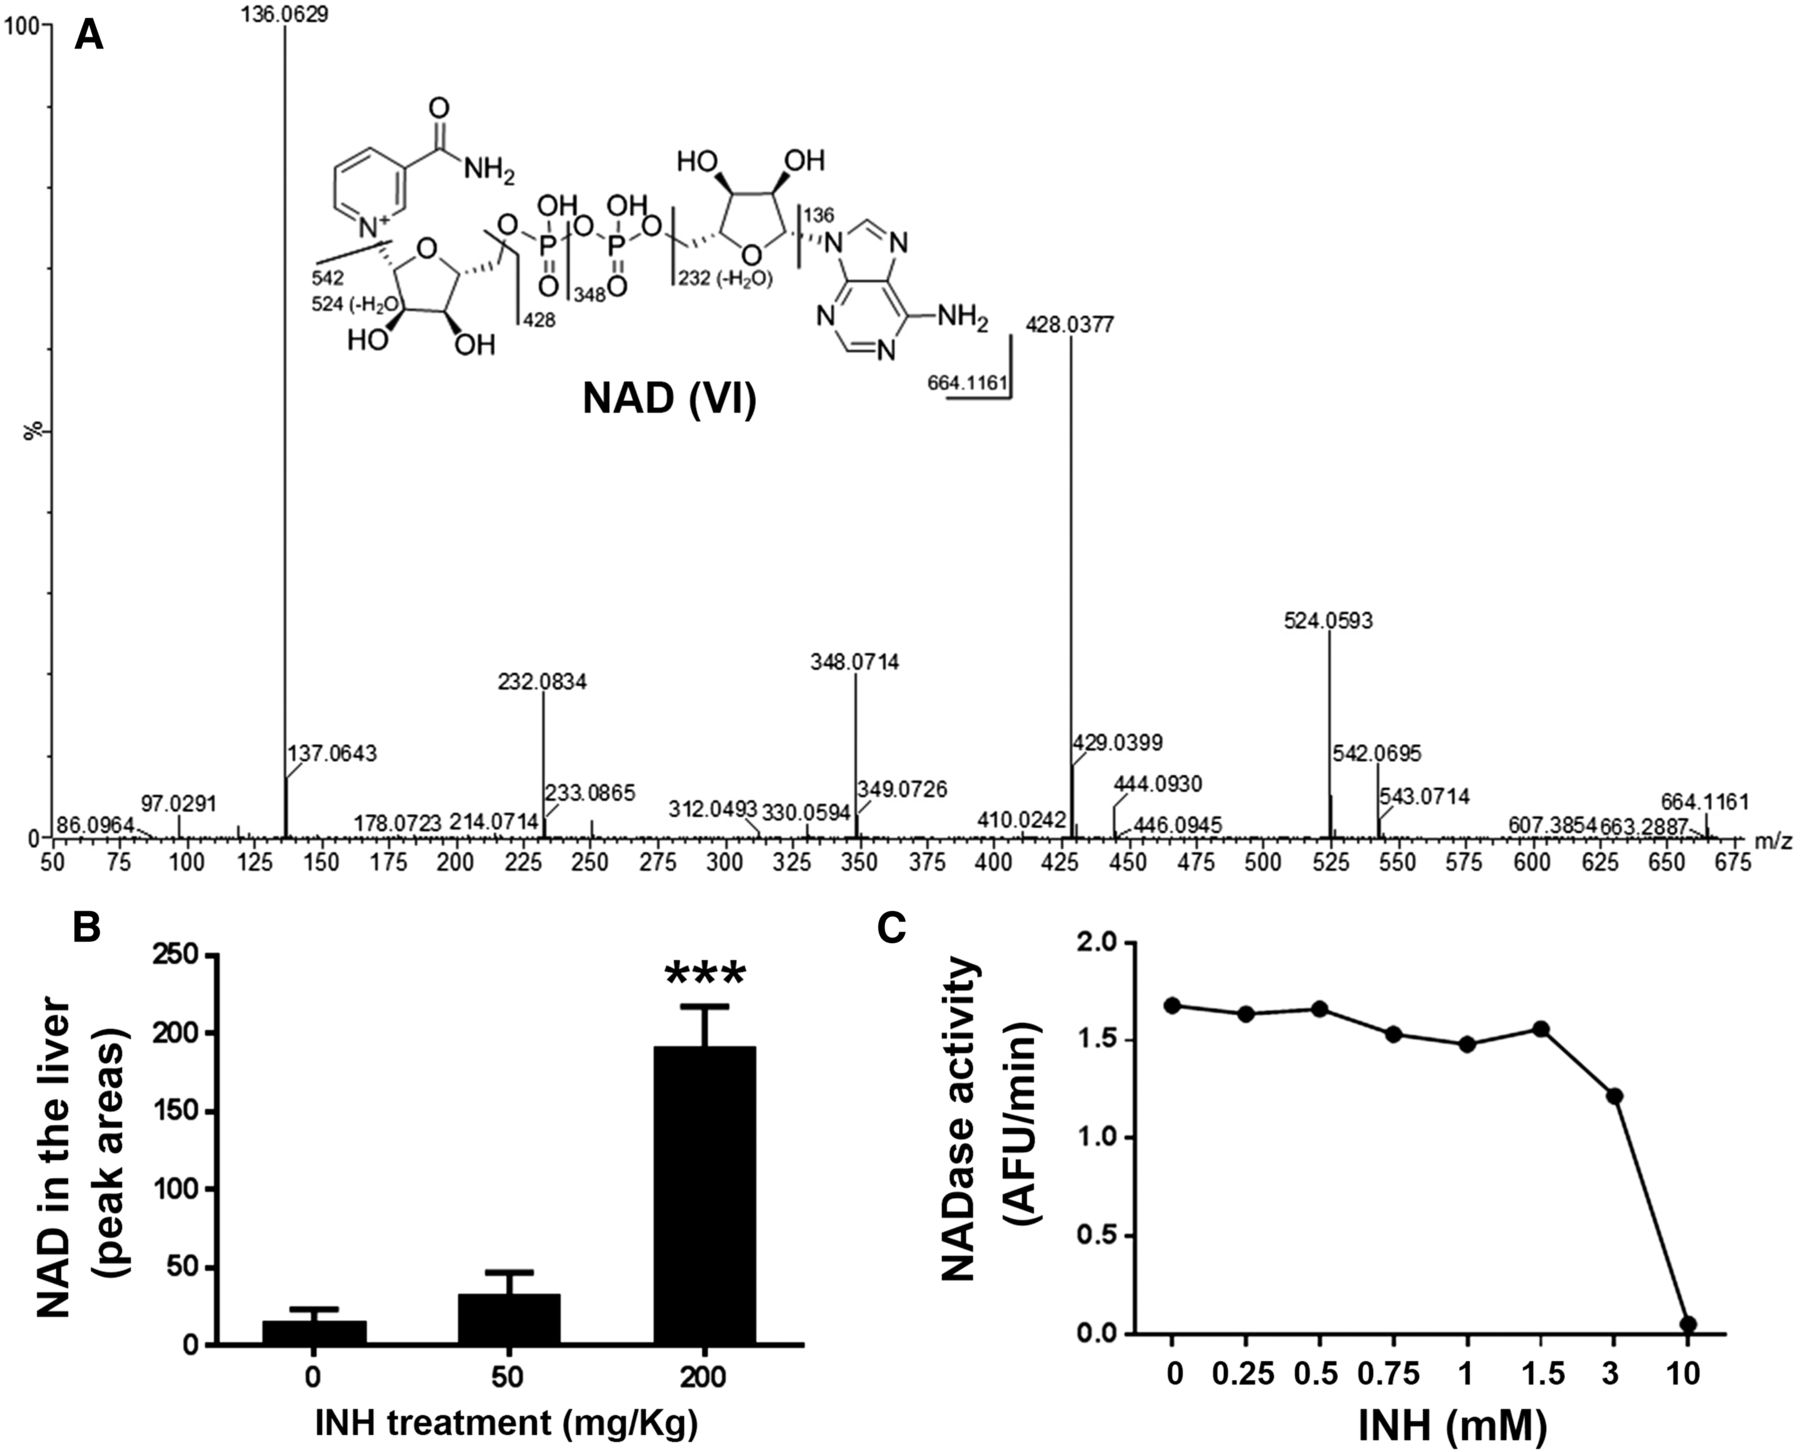 A High Dose Of Isoniazid Disturbs Endobiotic Homeostasis In Mouse Liver